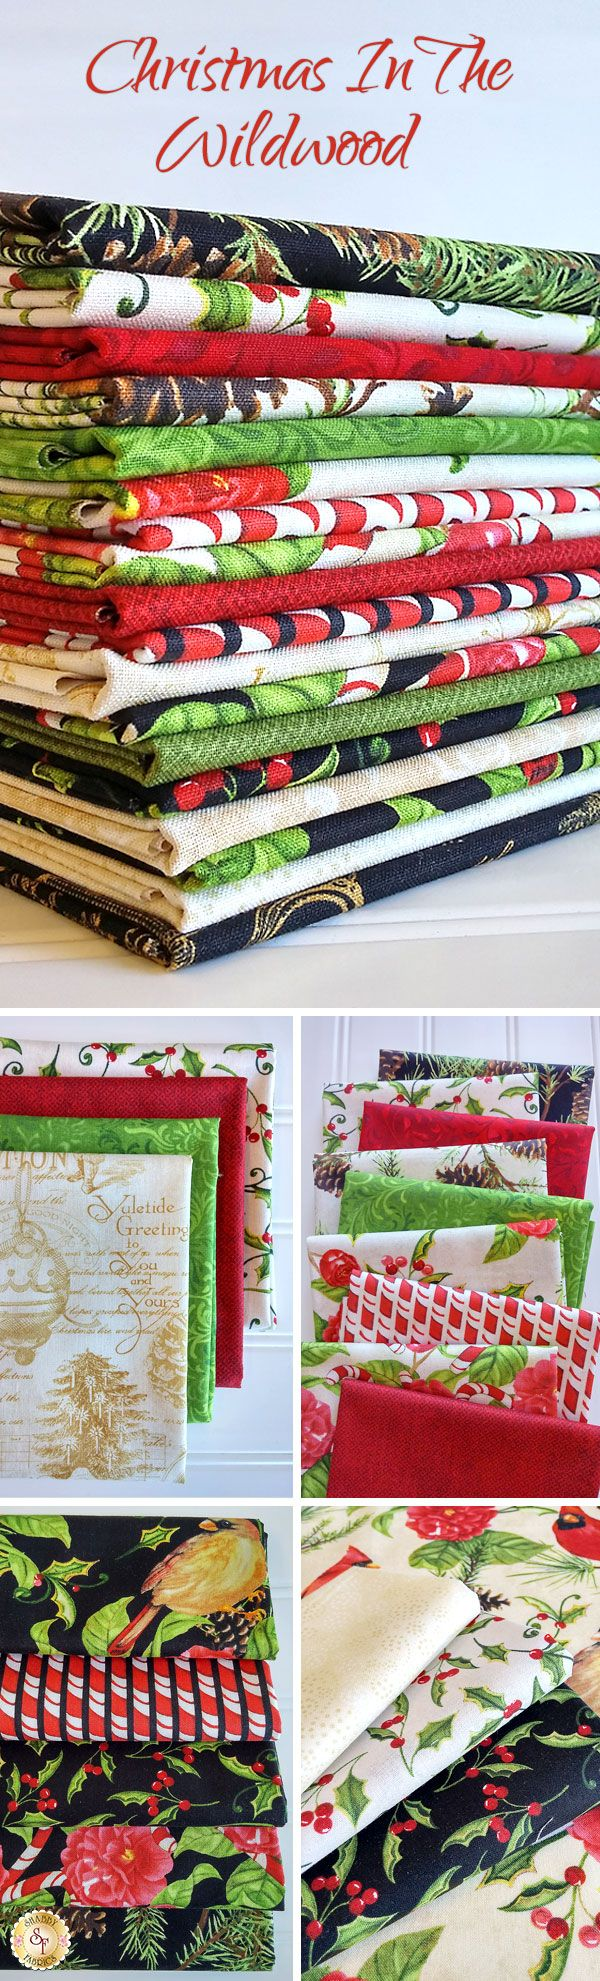 Christmas In The Wildwood by Nancy Mink for Wilmington Prints is a festive holiday fabric collection available at Shabby Fabrics!